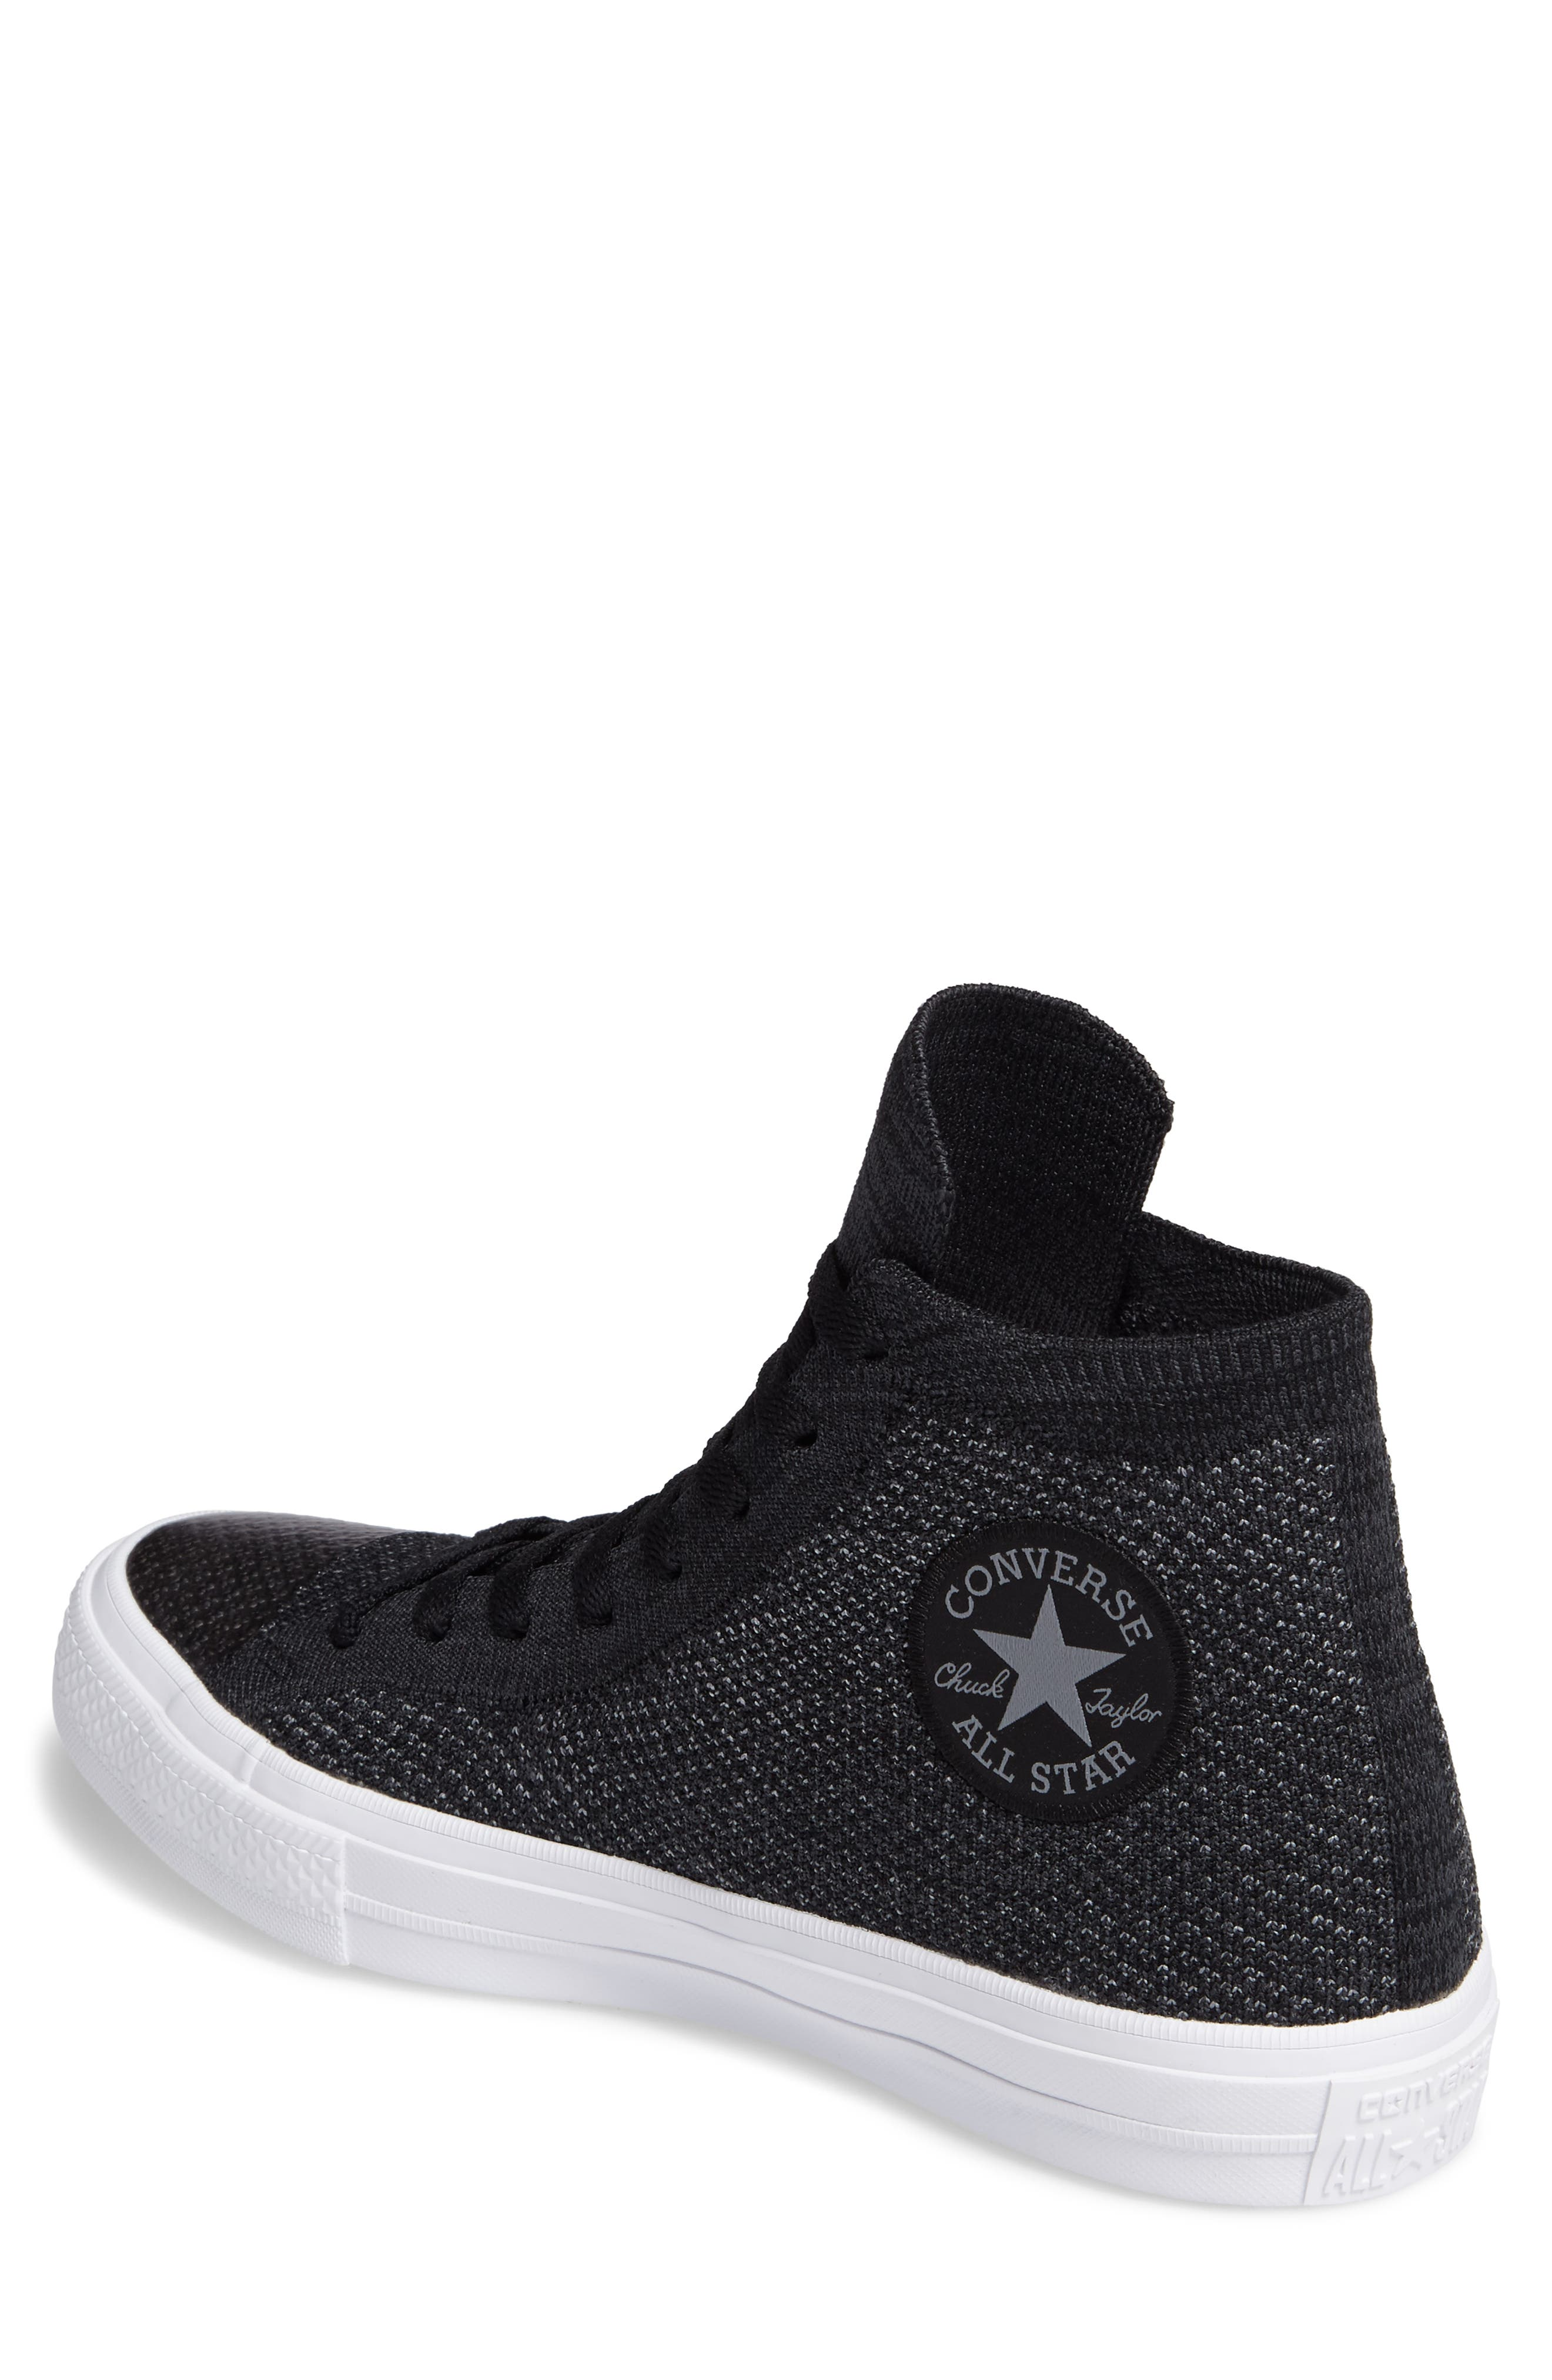 Chuck Taylor<sup>®</sup> All Star<sup>®</sup> Flyknit Hi Sneaker,                             Alternate thumbnail 7, color,